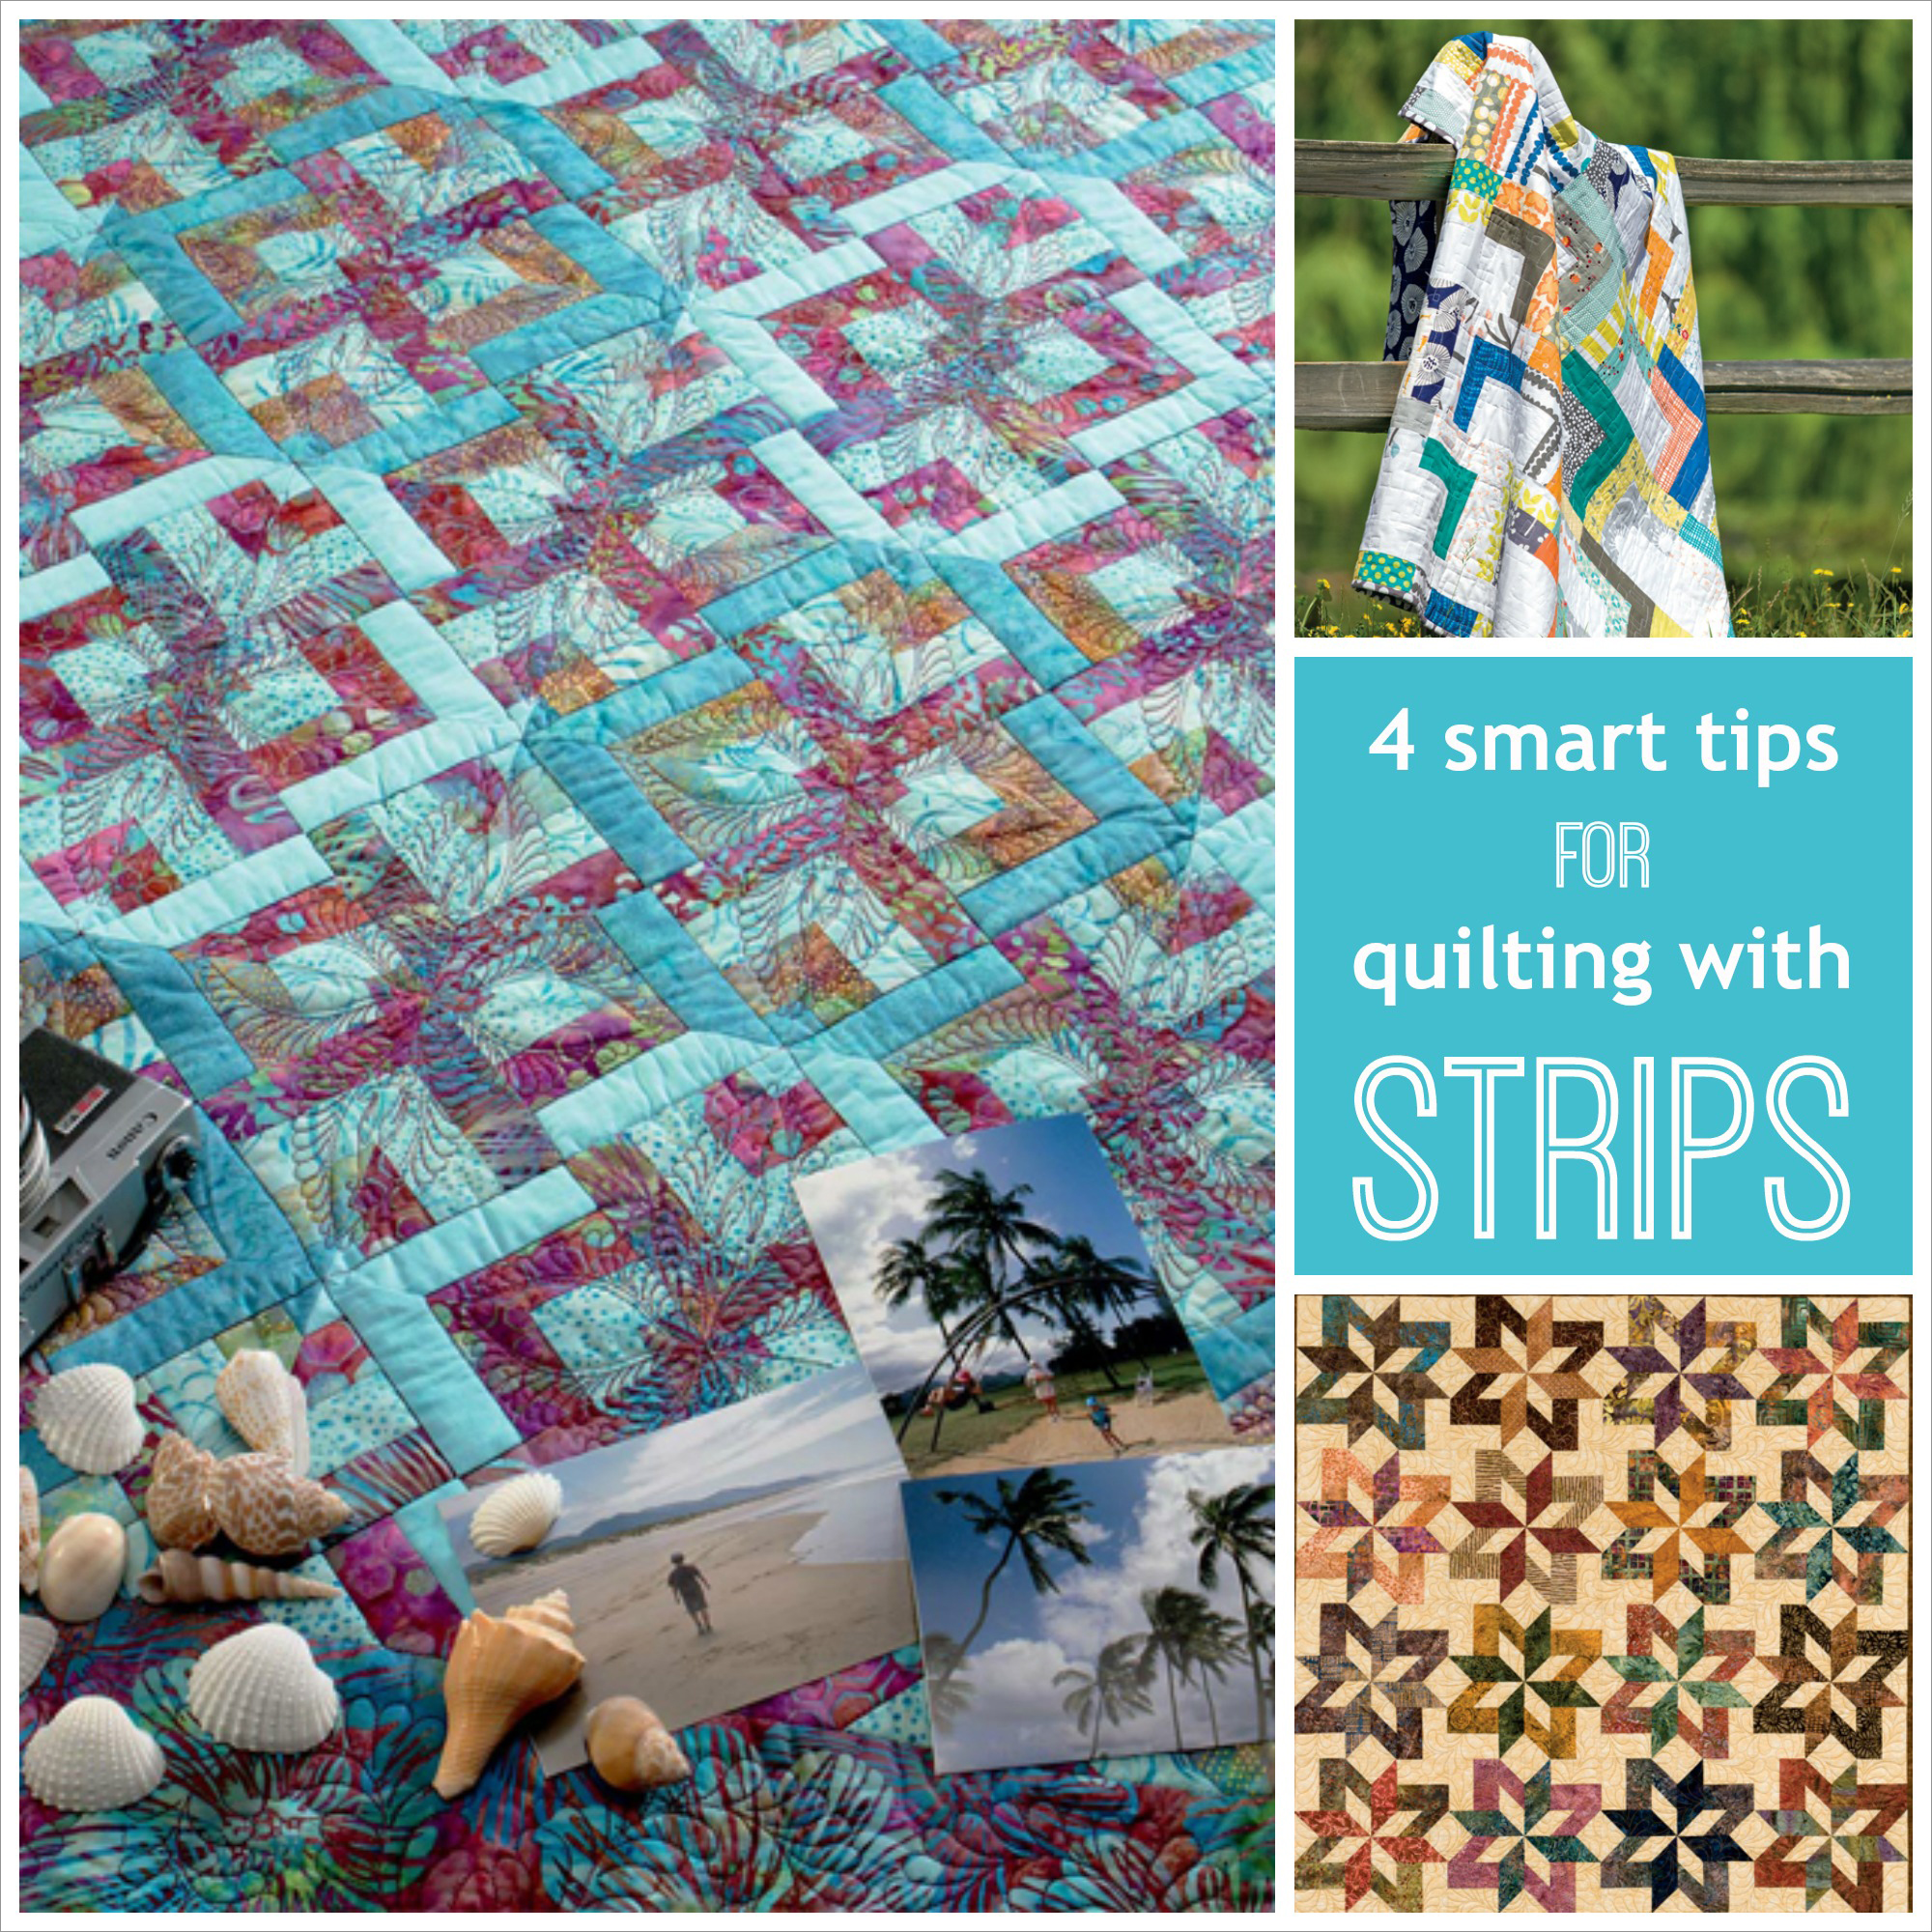 4 smart tips for quilting with strips